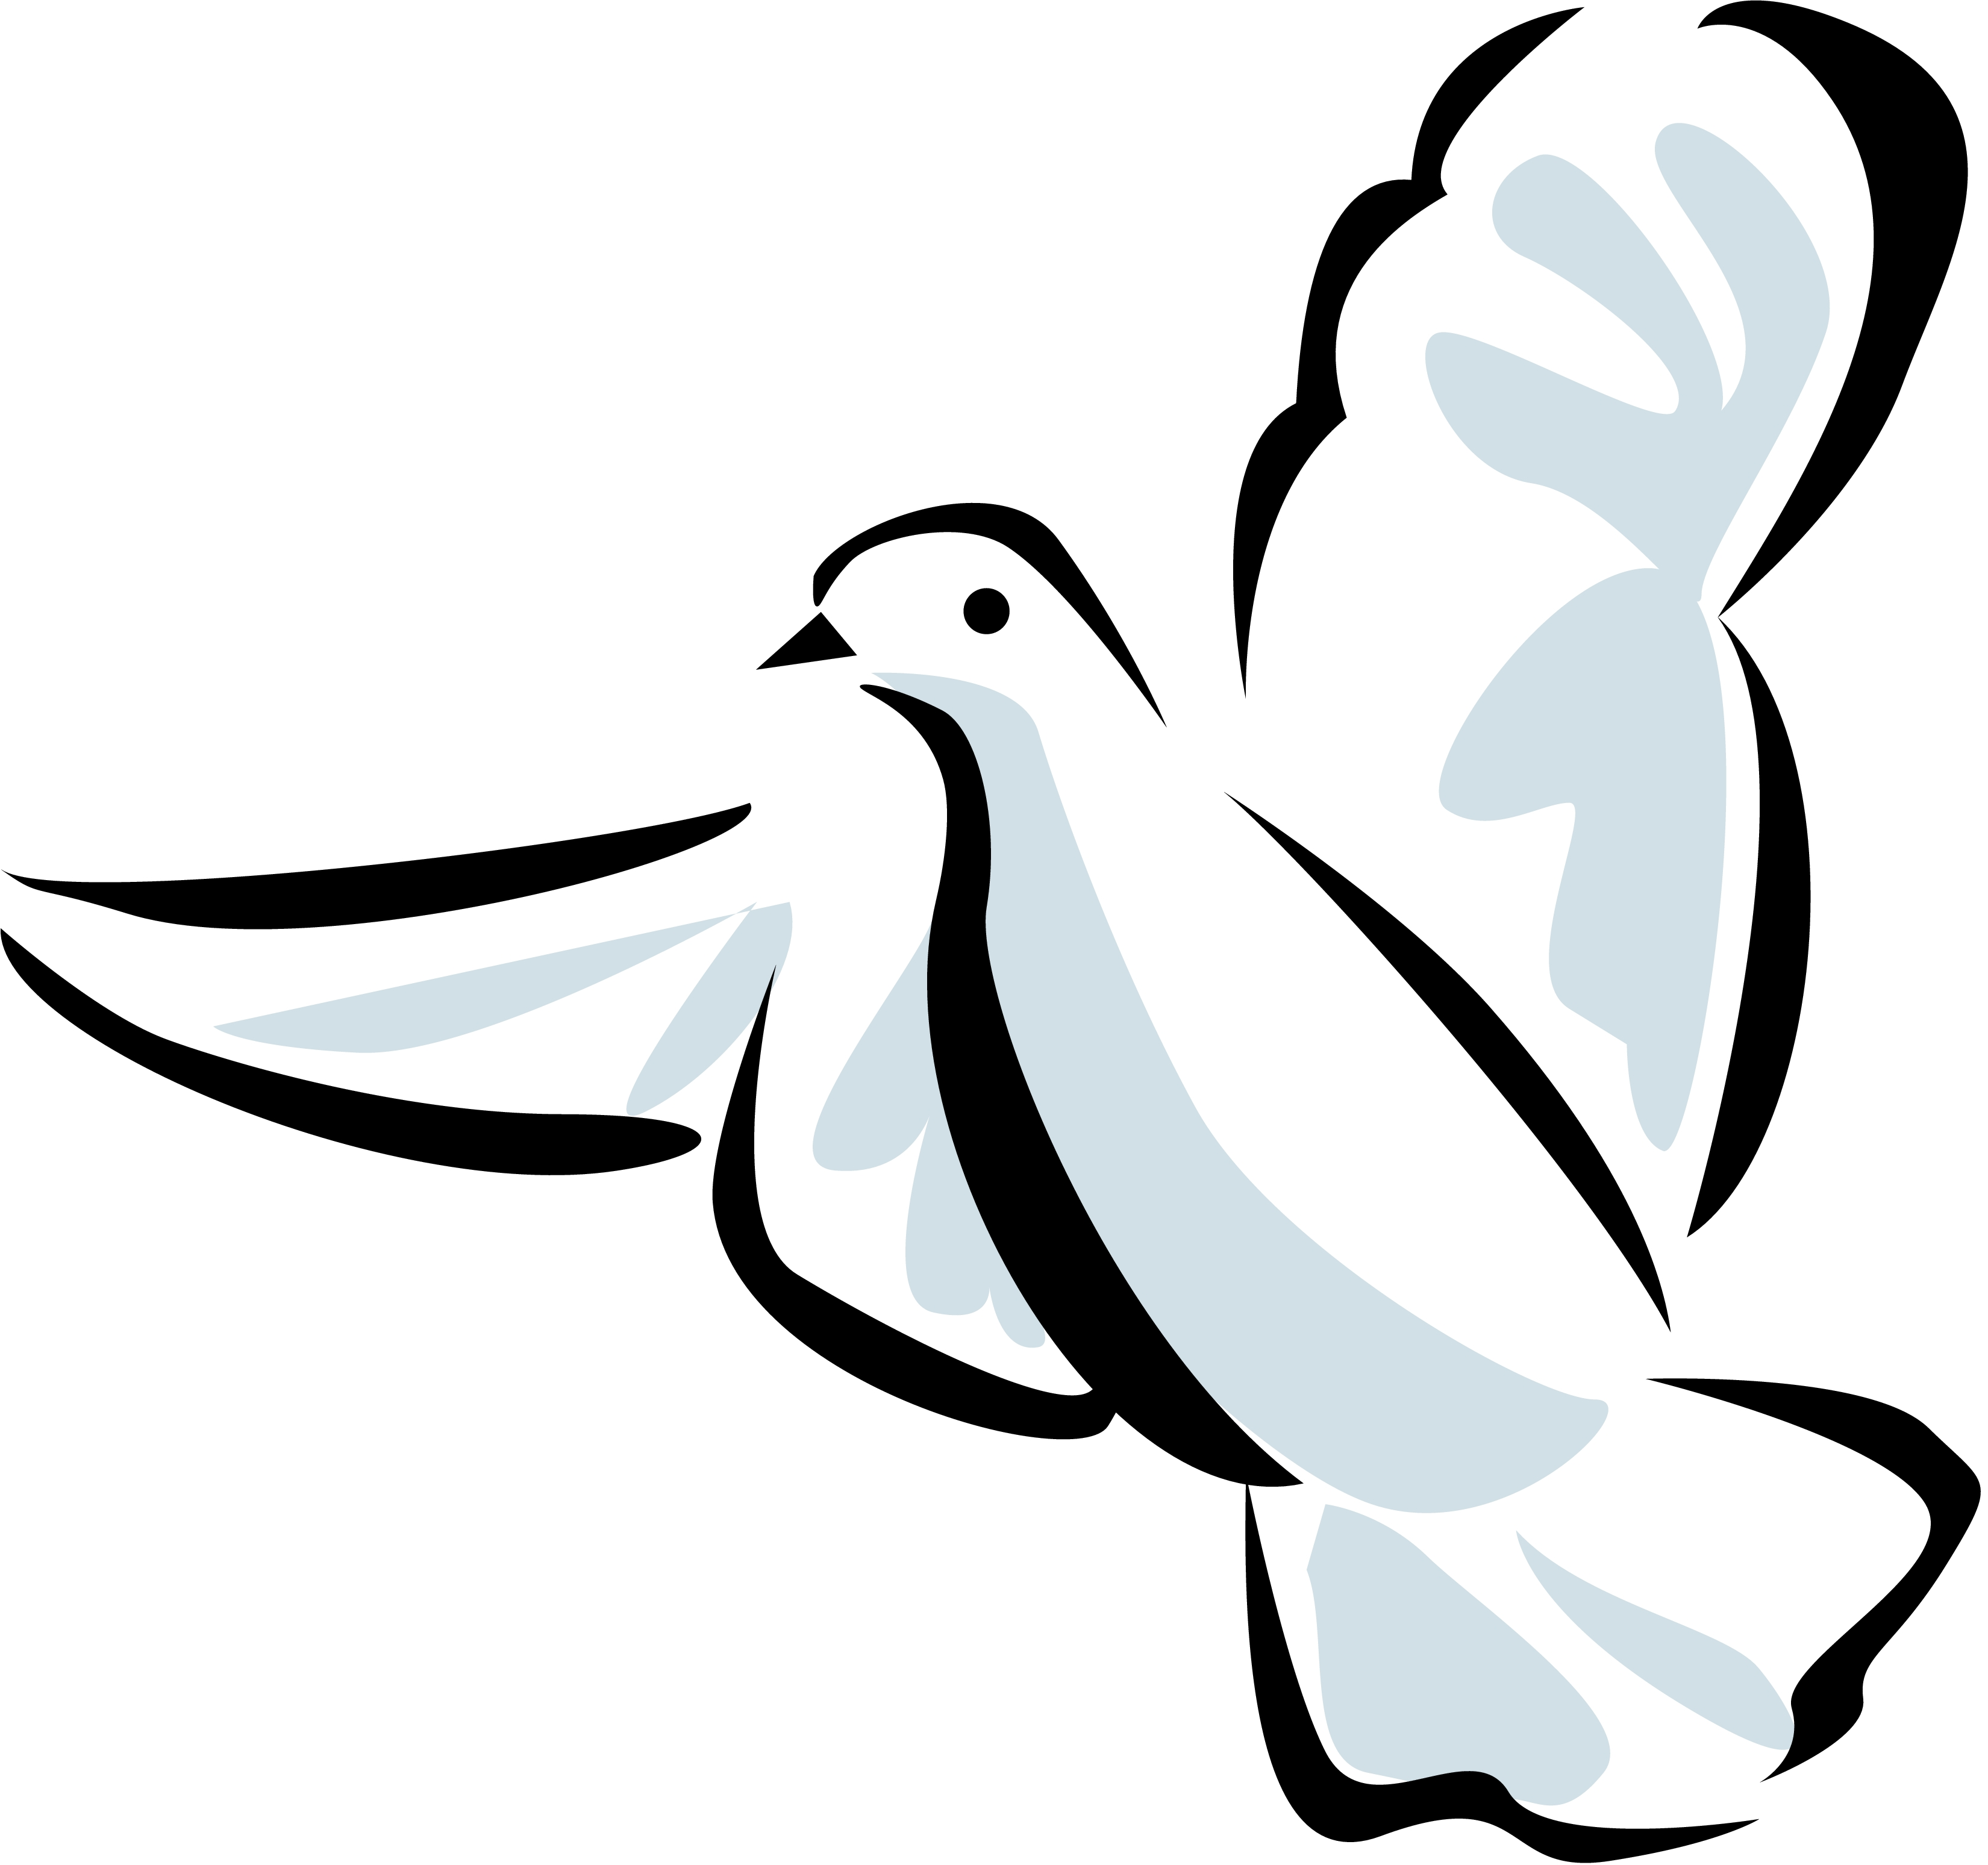 Thursday at getdrawings com. Holy clipart holy spirit picture library download